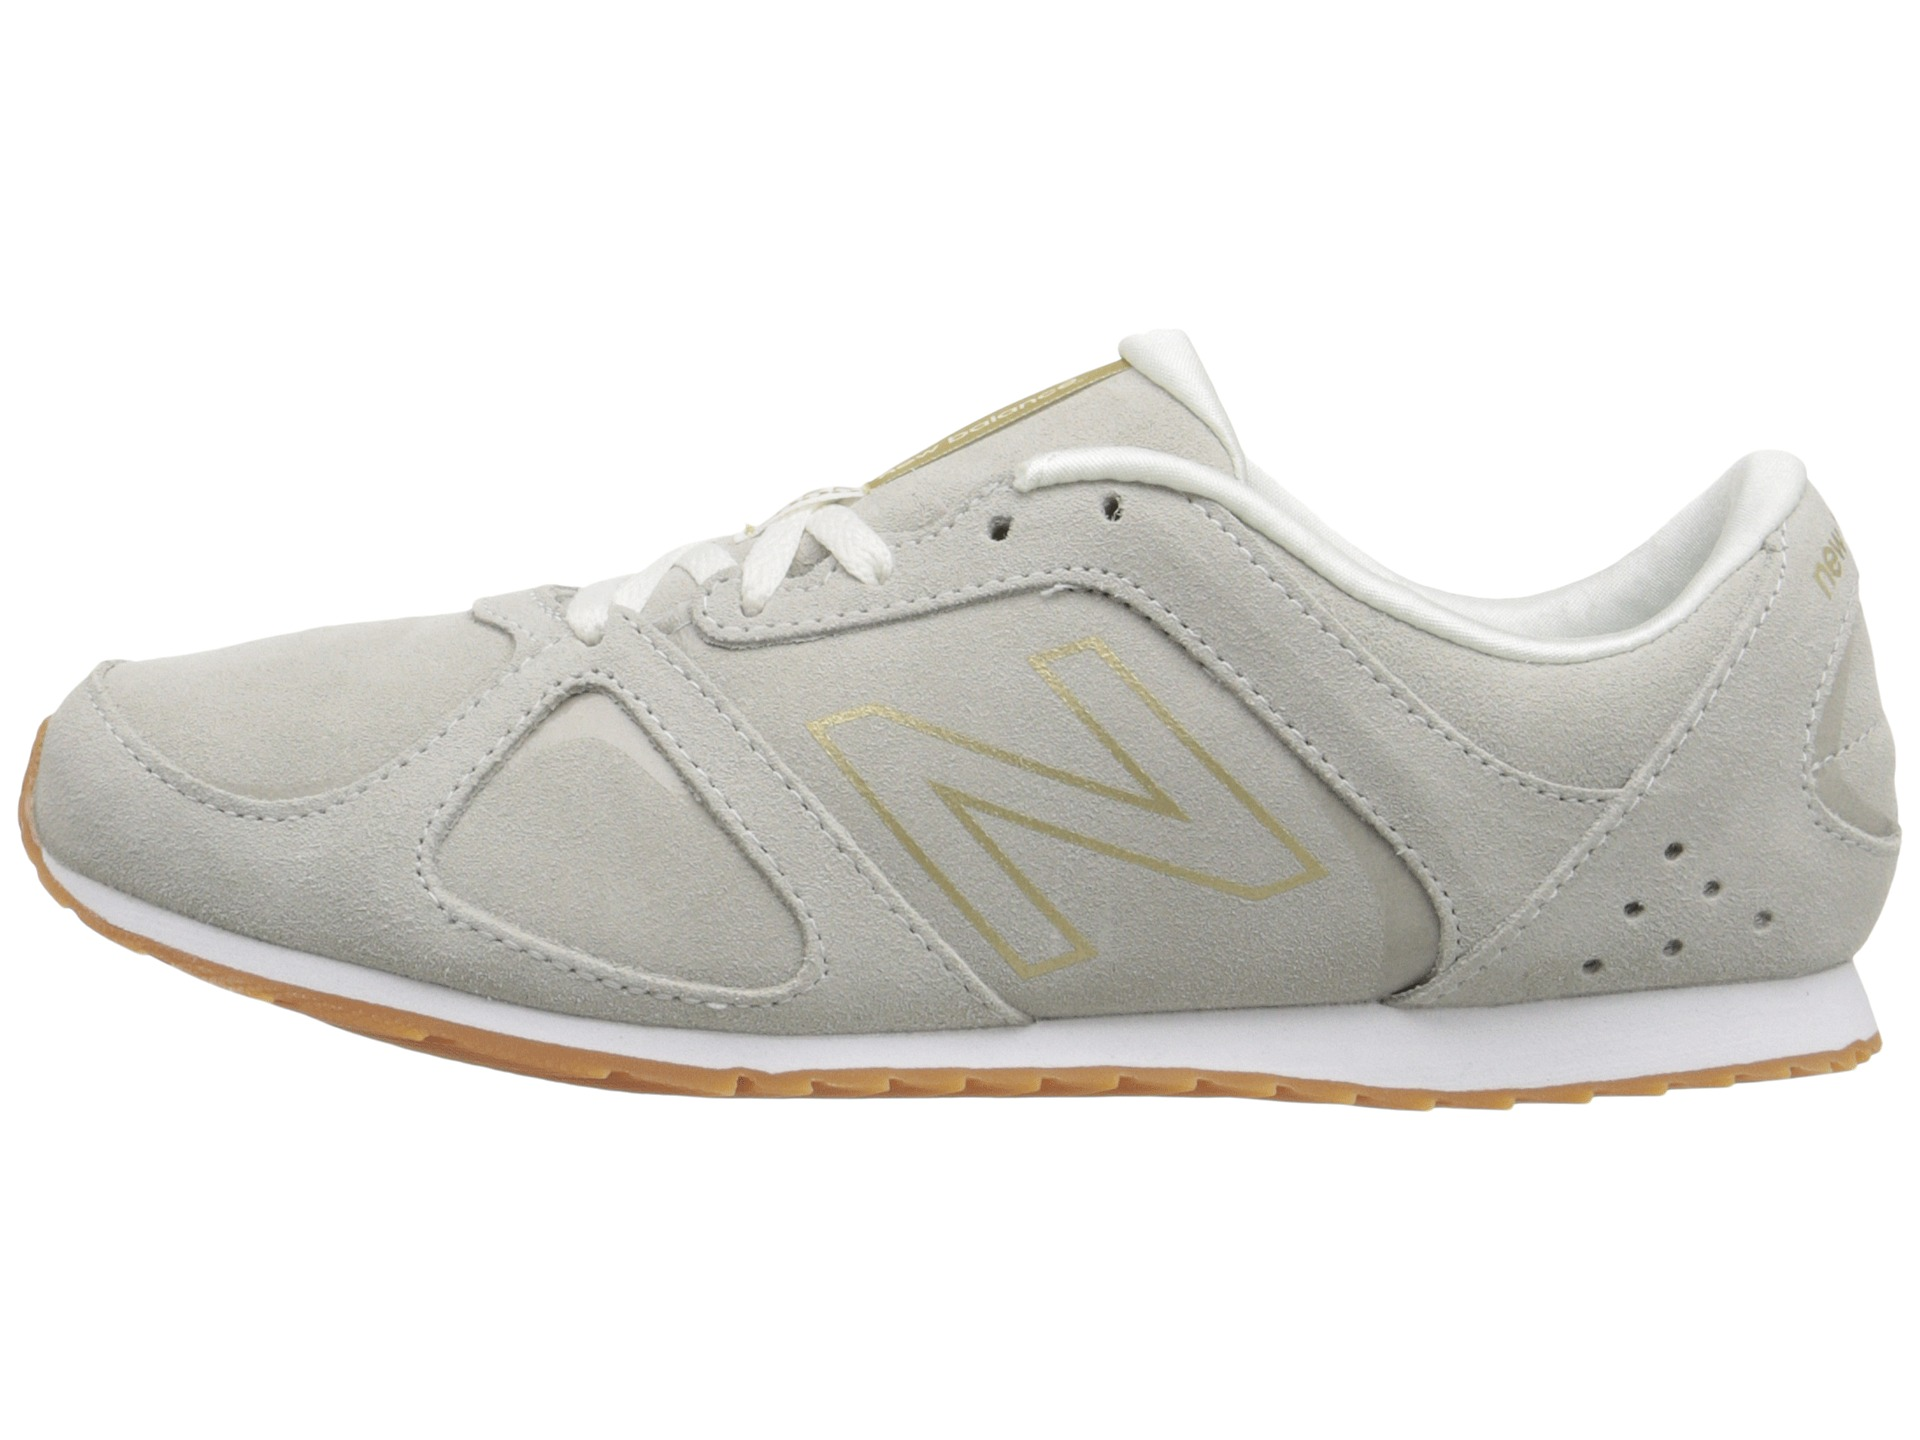 s8vsg7df new balance walking shoes zappos